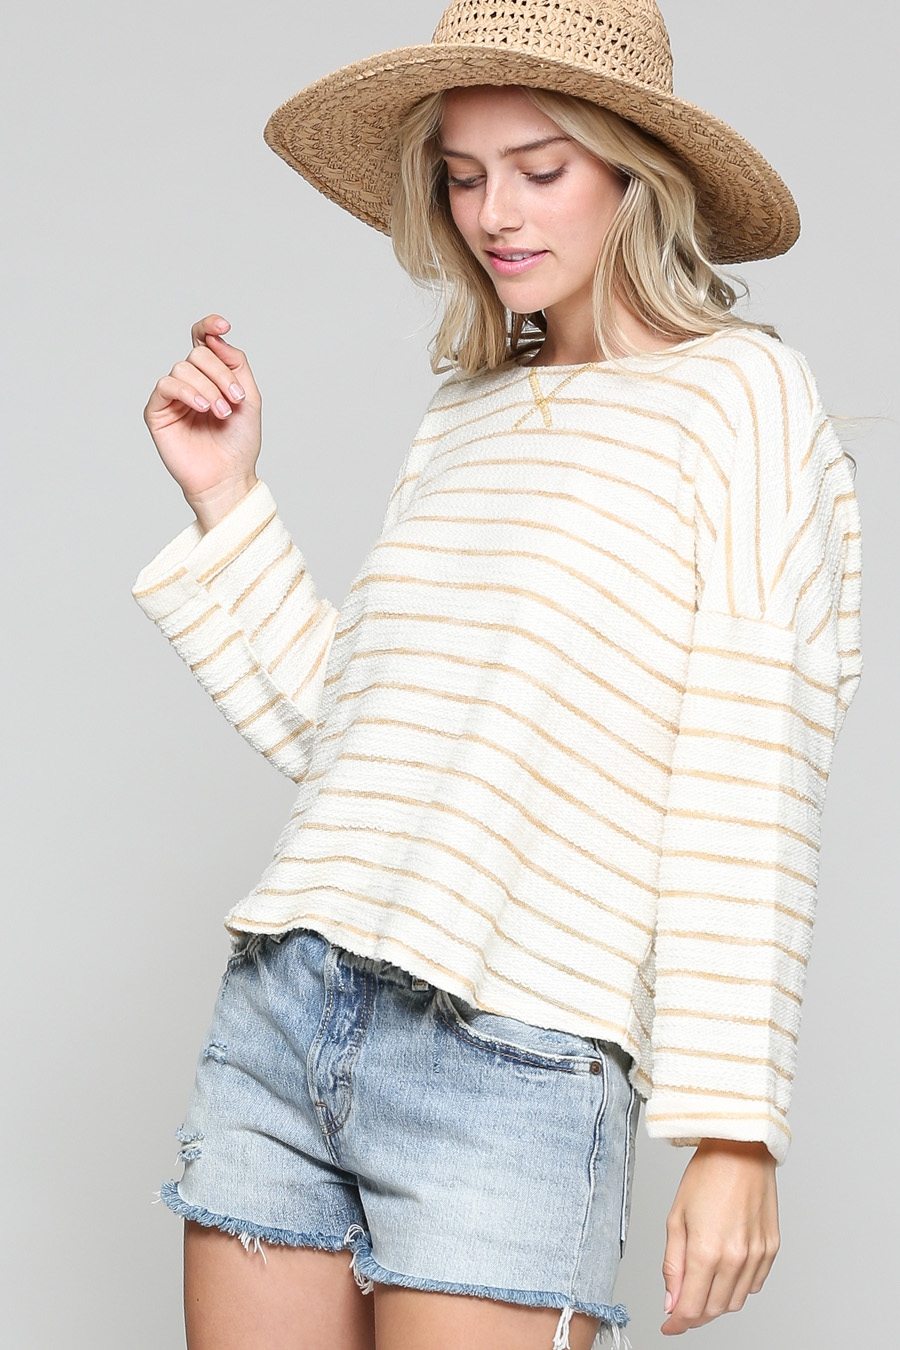 OPEN TIE BACK STRIPE TOP - orangeshine.com